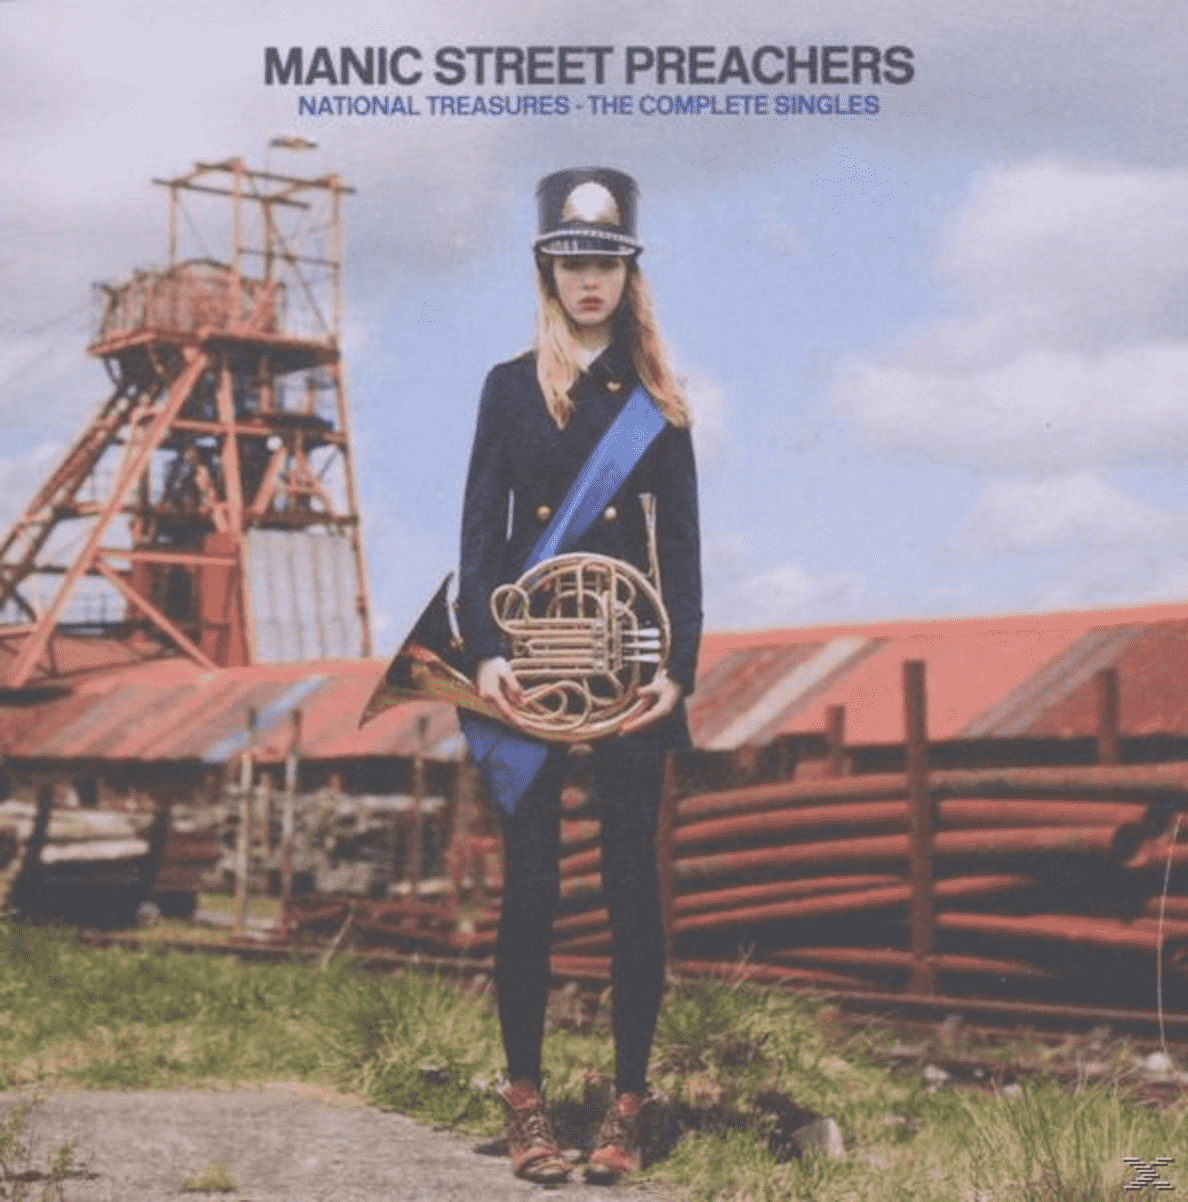 Manic Street Preachers - National Treasures-The Complete Singles - (CD)